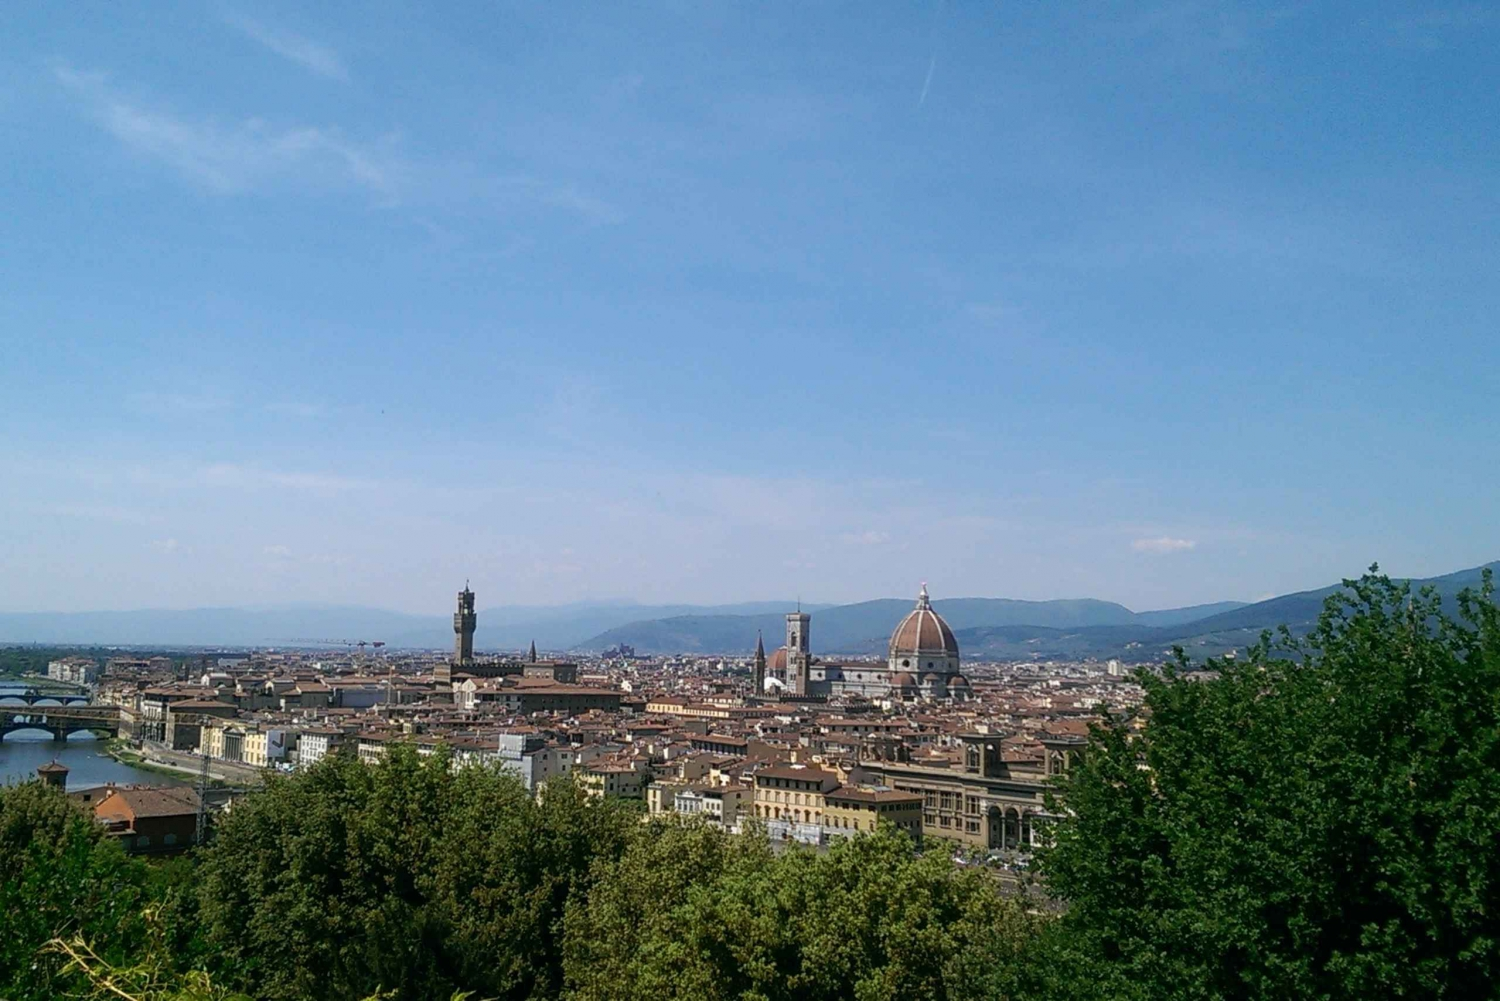 4-Hour Private Tour Including Uffizi & Accademia